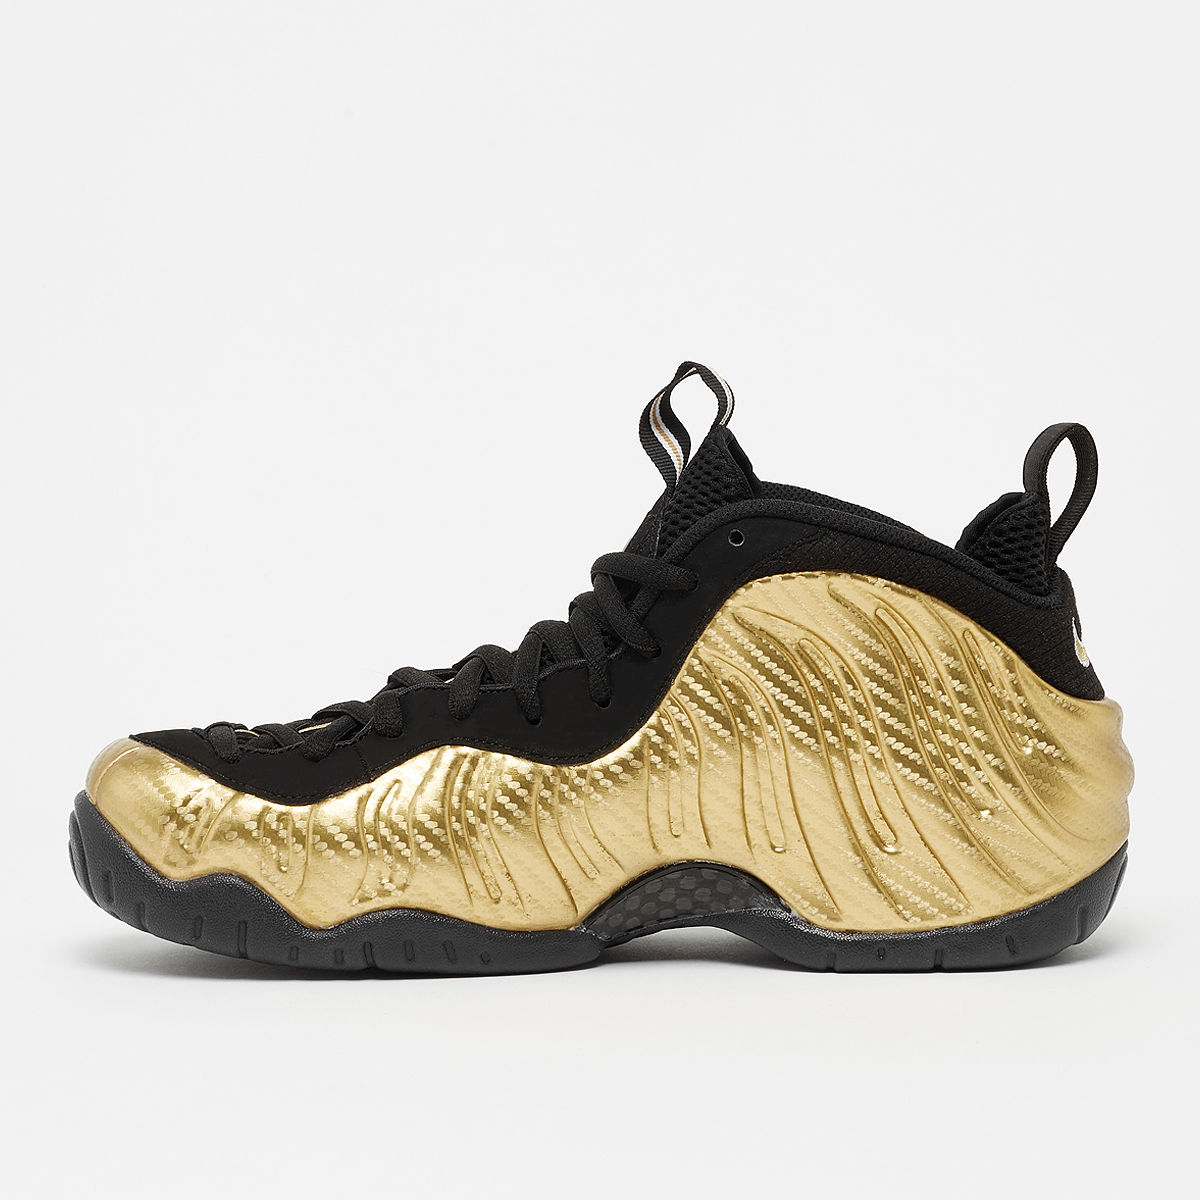 hot sale online d7344 80554 Nike Air Foamposite Pro Color  Metallic Gold Black-Black-White Style  624041 -701. Release Date  10 19 2017. Price   230.00